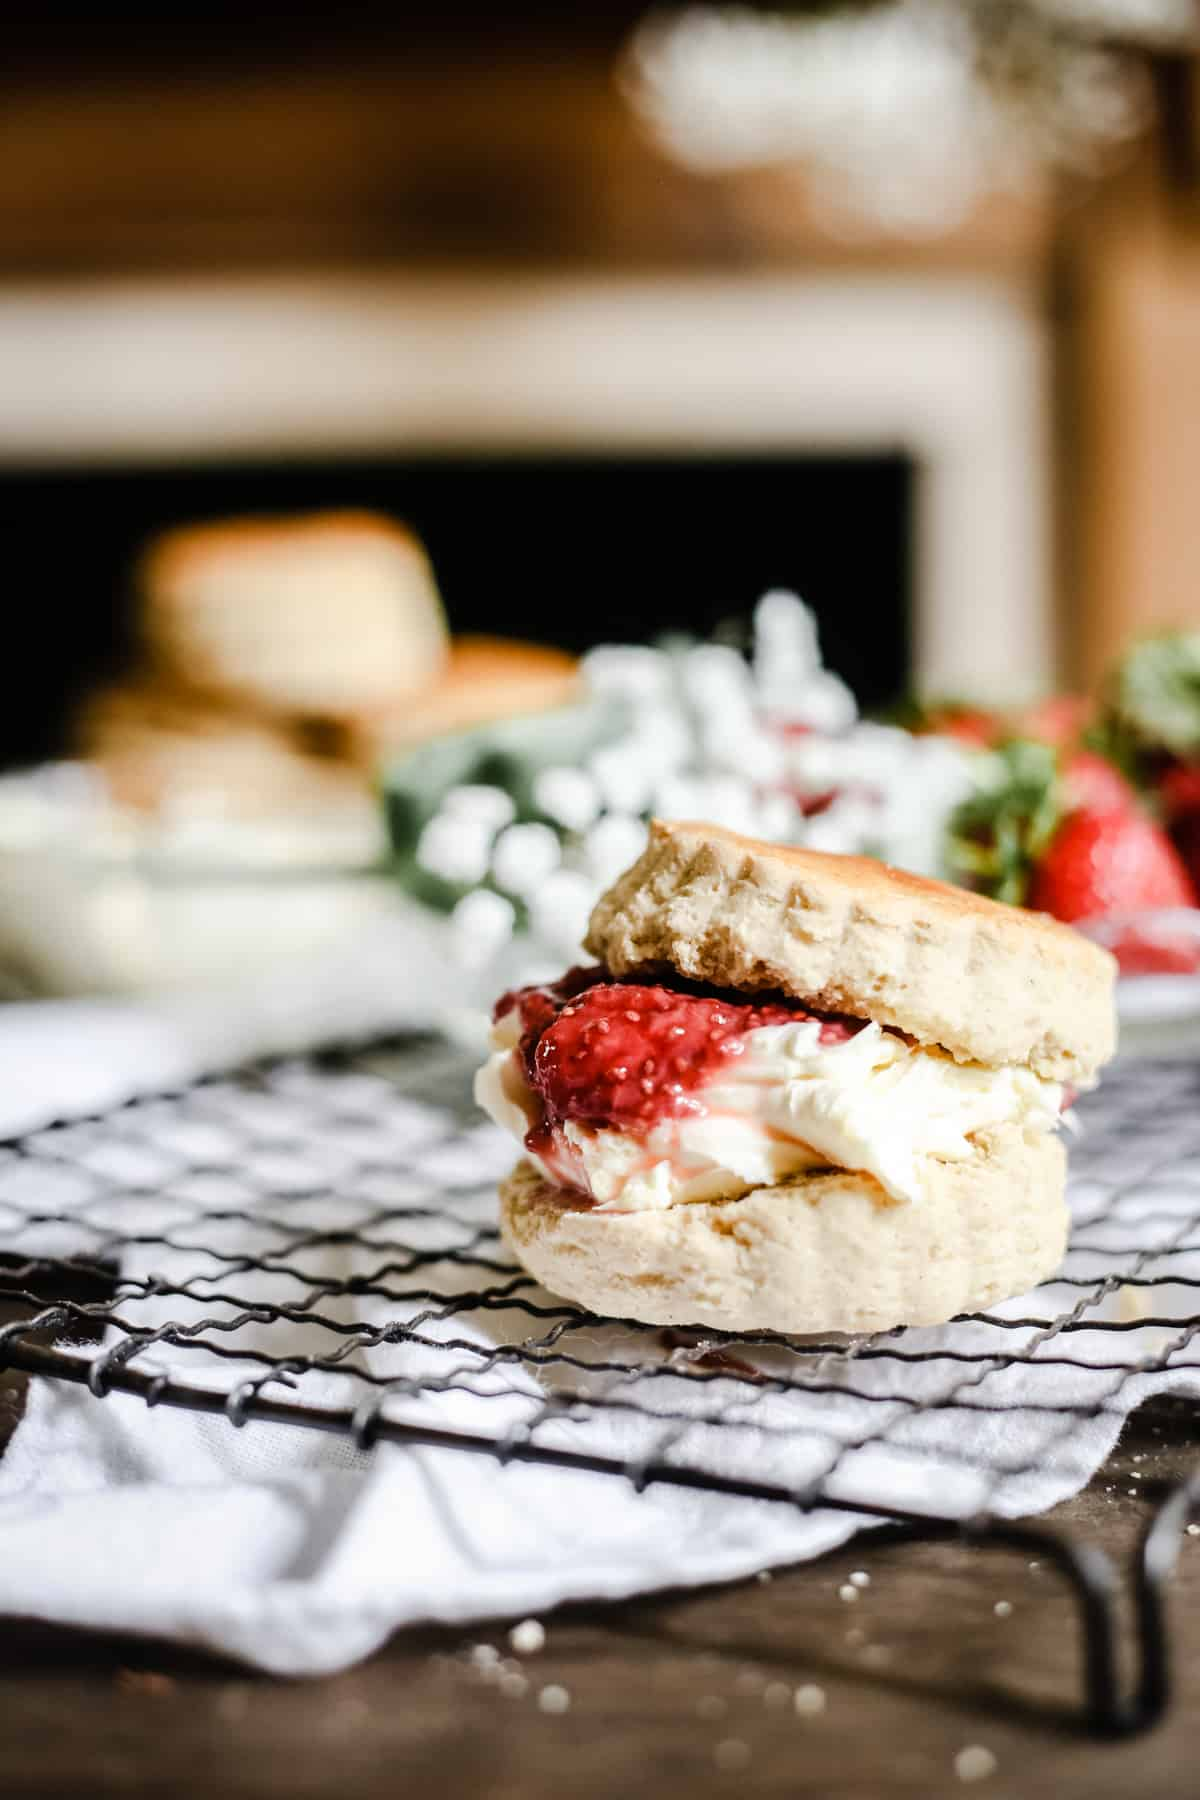 Side shot of a gluten-free scone filled with clotted cream and strawberry jam on a wire rack